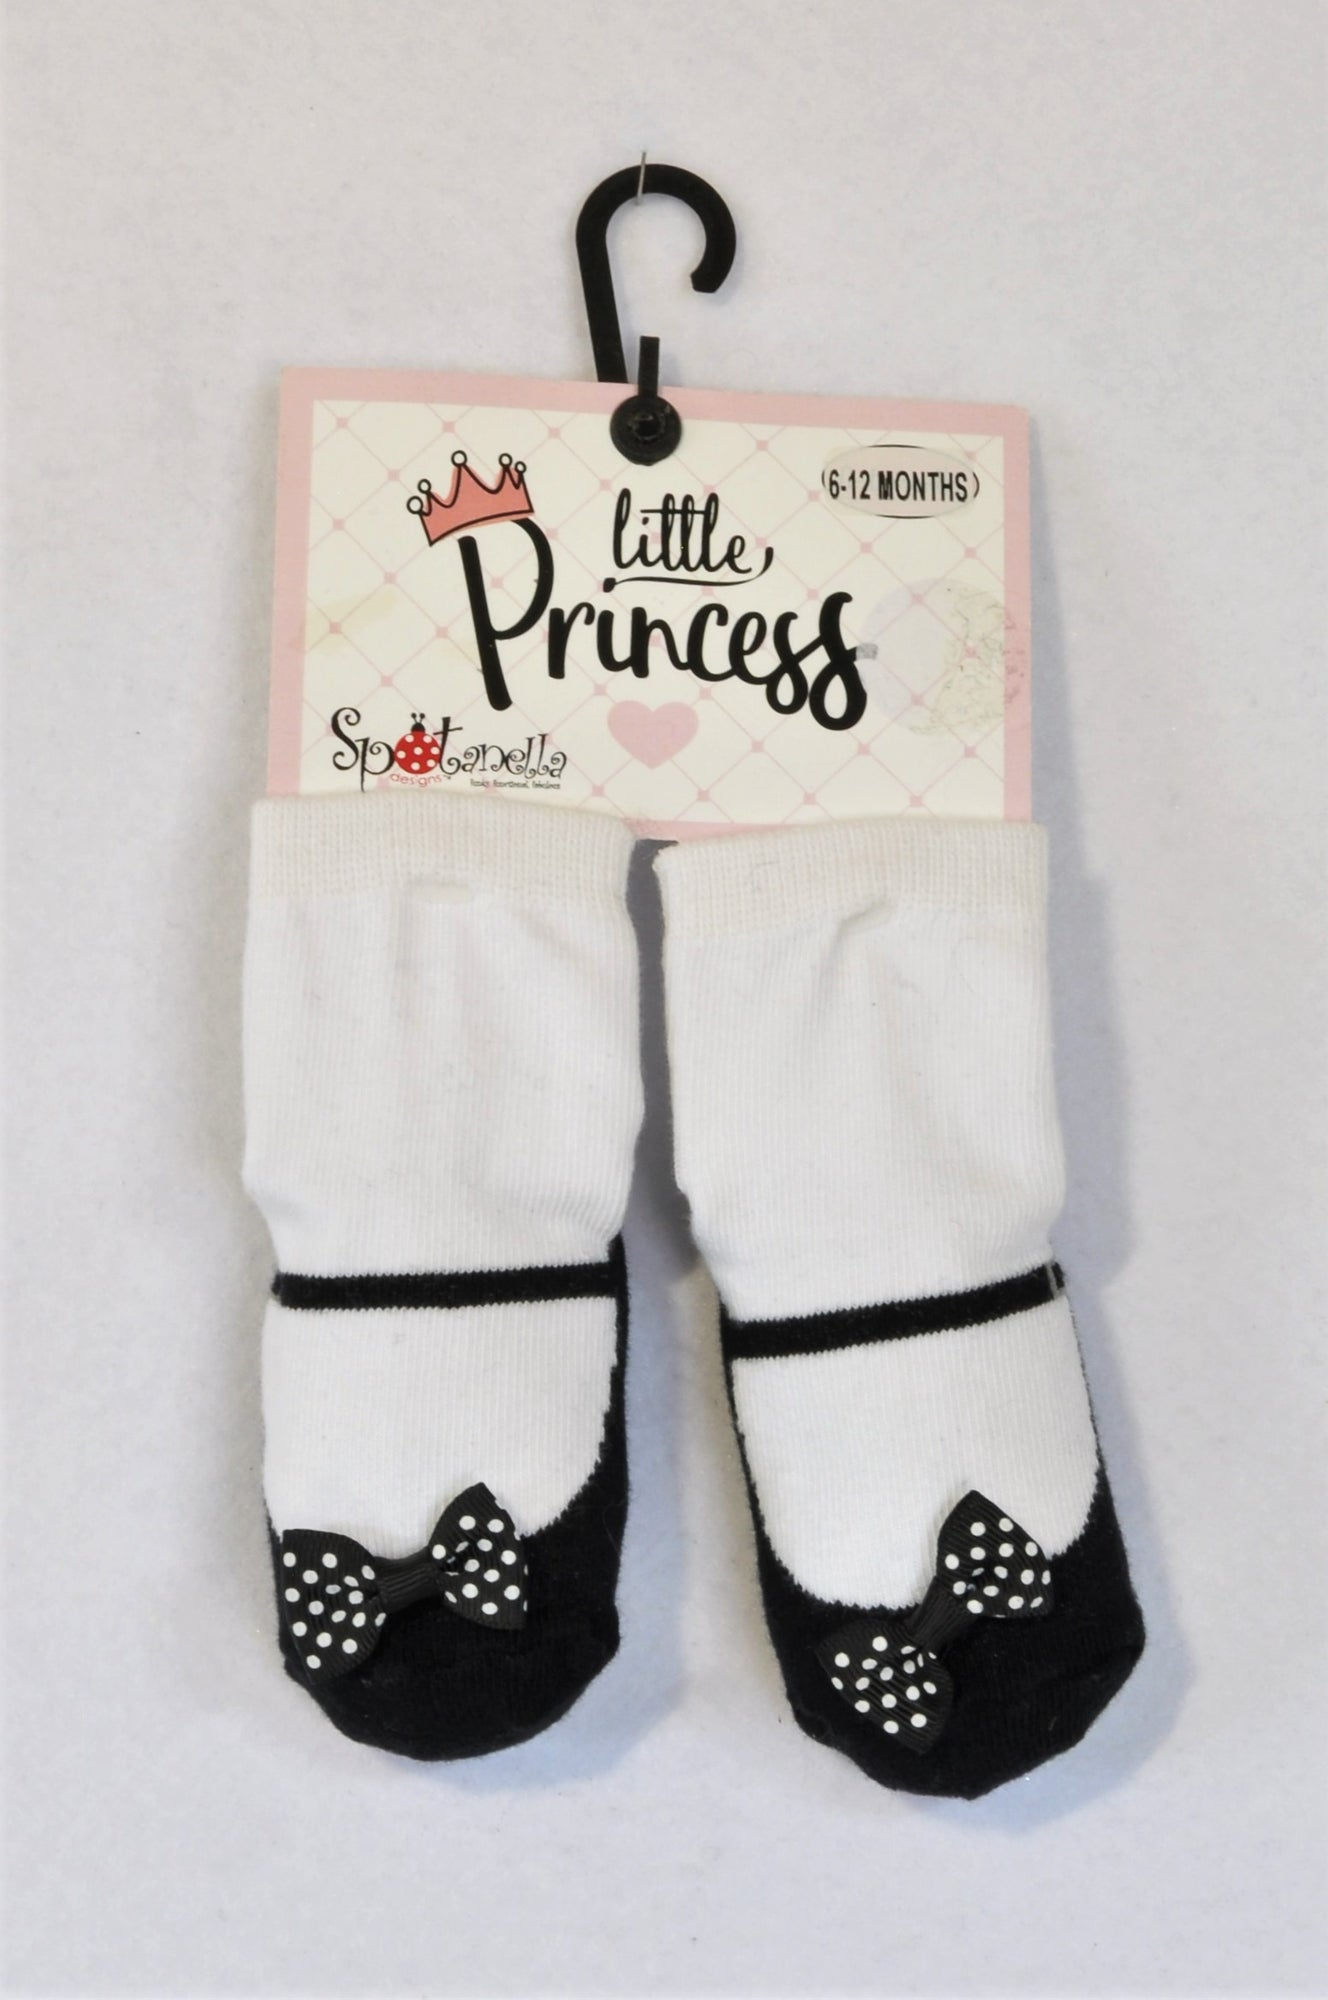 New Spotanella Designs Little Princess Black Dotty Bow Non-Slip Socks Girls 6-12 months